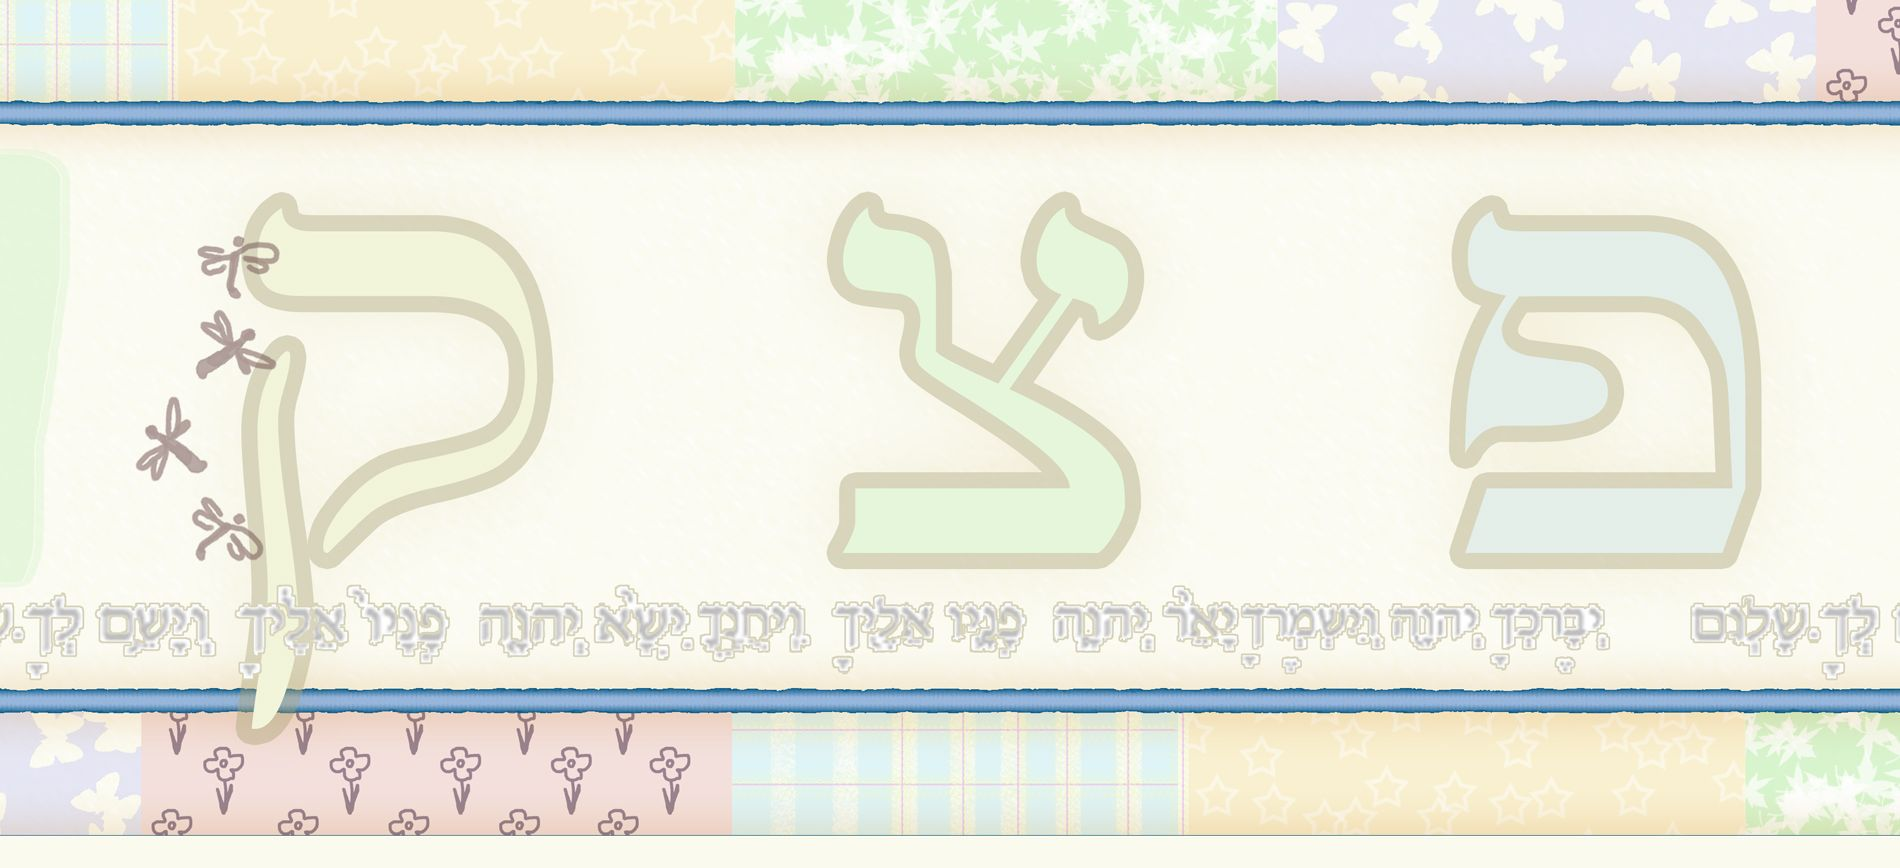 Christian wallpaper in Hebrew. Nursery wallpaper border. Alphabet border.